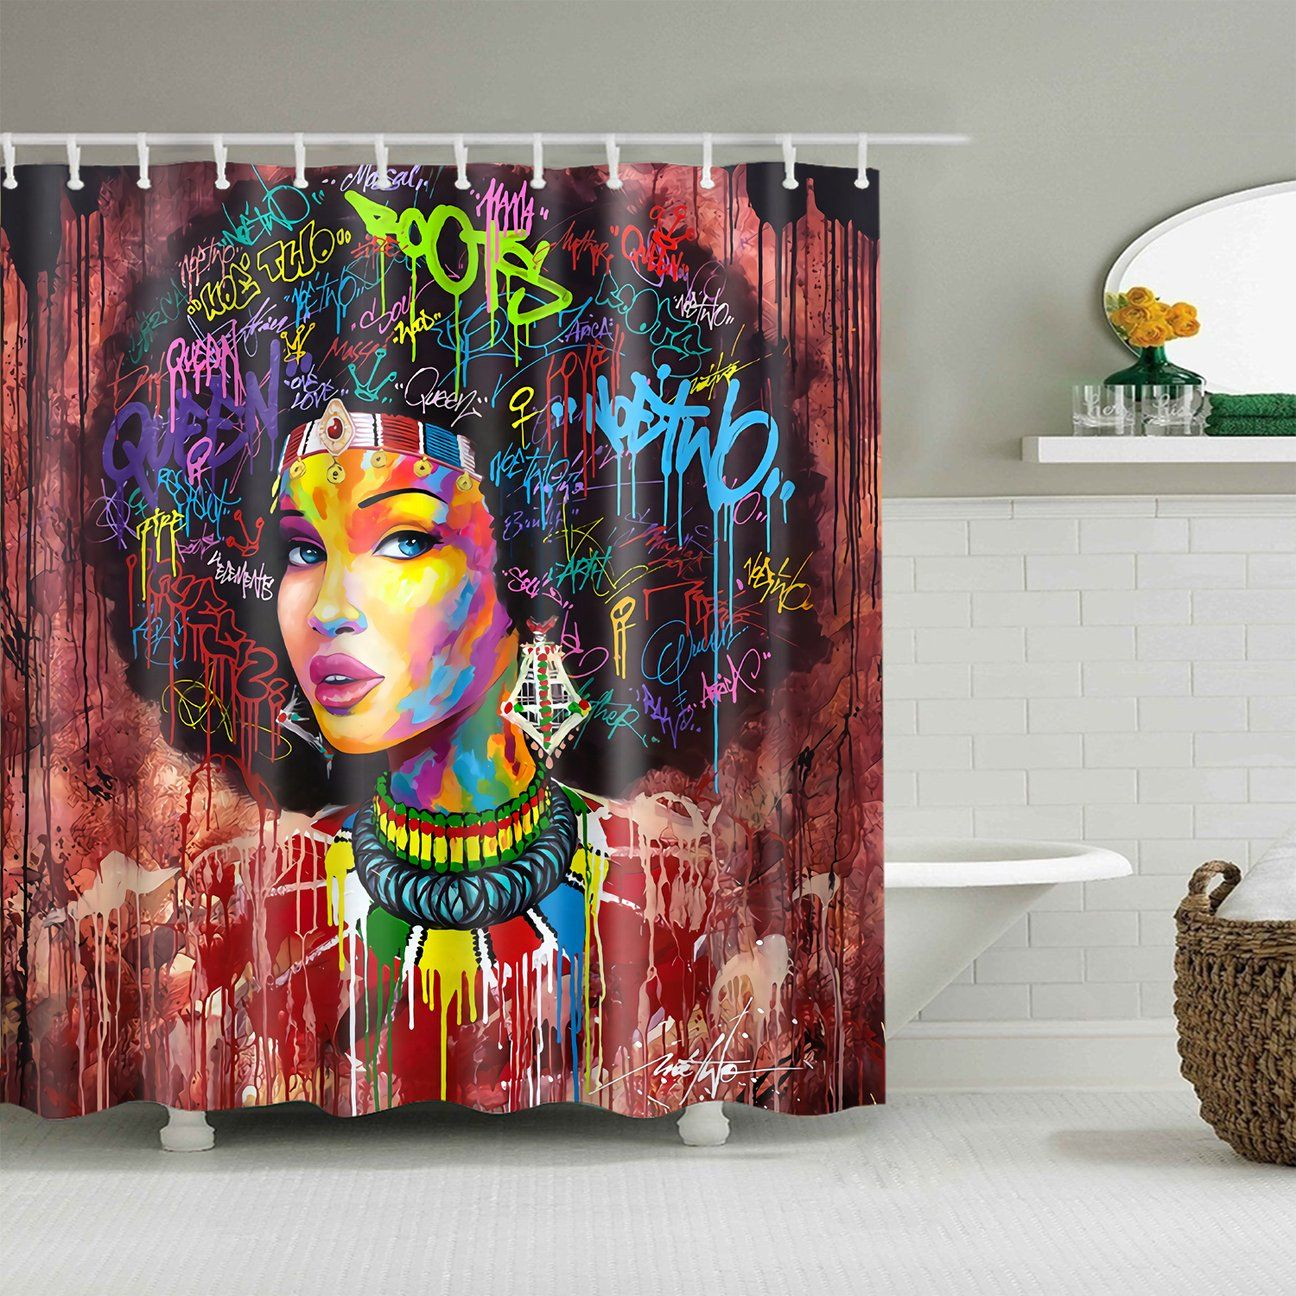 Crescent Art Black Afro Girl Colorful Quote Hairstlye Shower Curtain Bathroom Decor Afro Girl Color Quotes Curtains